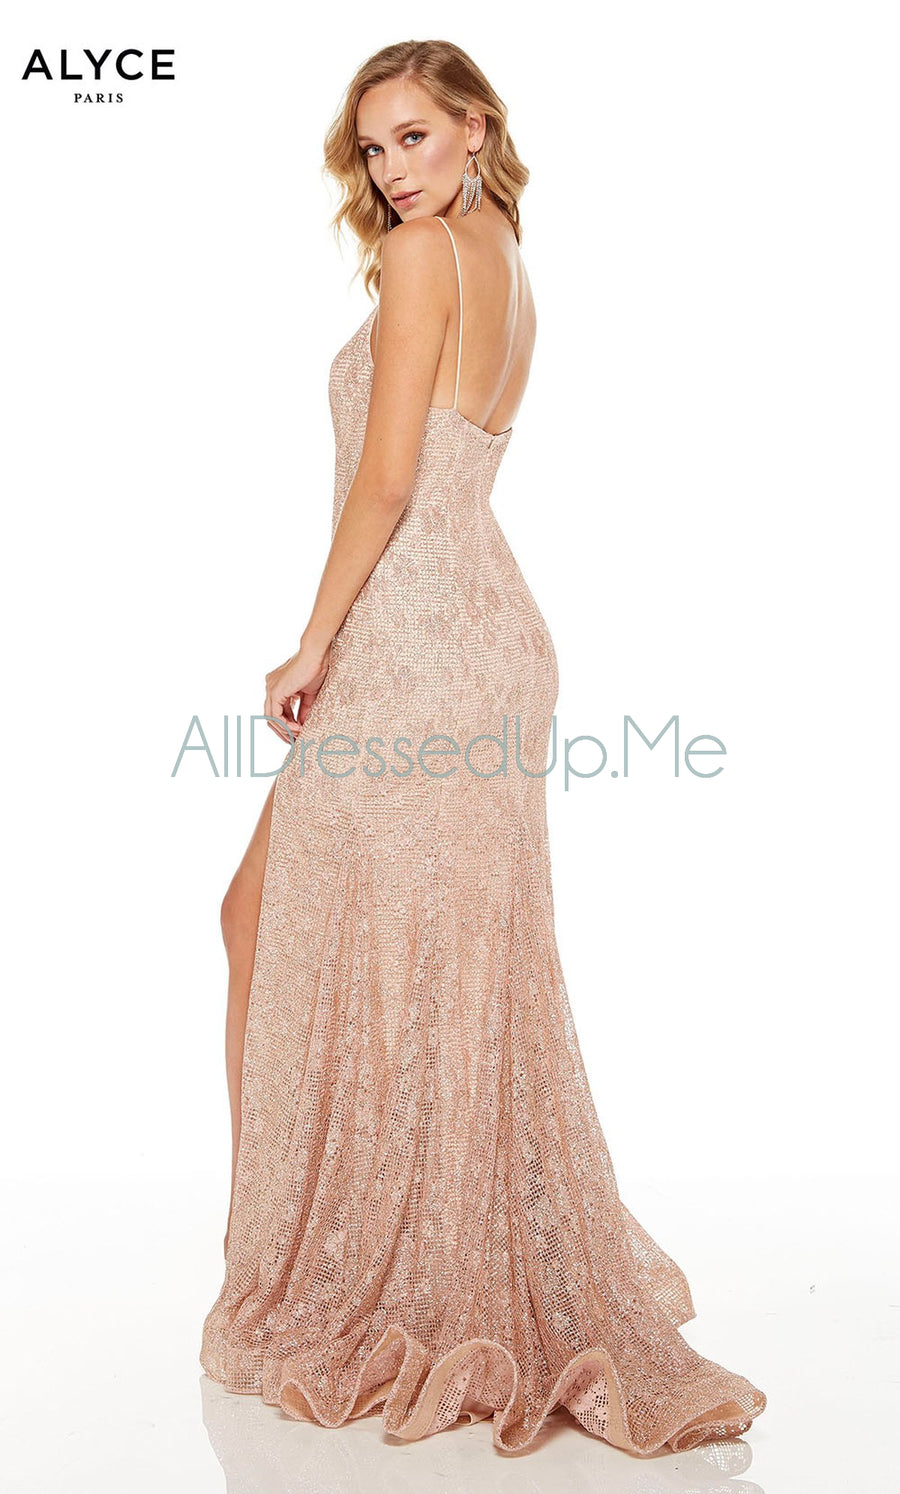 Alyce Paris - 60817 - All Dressed Up, Prom/Party Dress - - Dresses Two Piece Cut Out Sweetheart Halter Low Back High Neck Print Beaded Chiffon Jersey Fitted Sexy Satin Lace Jeweled Sparkle Shimmer Sleeveless Stunning Gorgeous Modest See Through Transparent Glitter Special Occasions Event Chattanooga Hixson Shops Boutiques Tennessee TN Georgia GA MSRP Lowest Prices Sale Discount